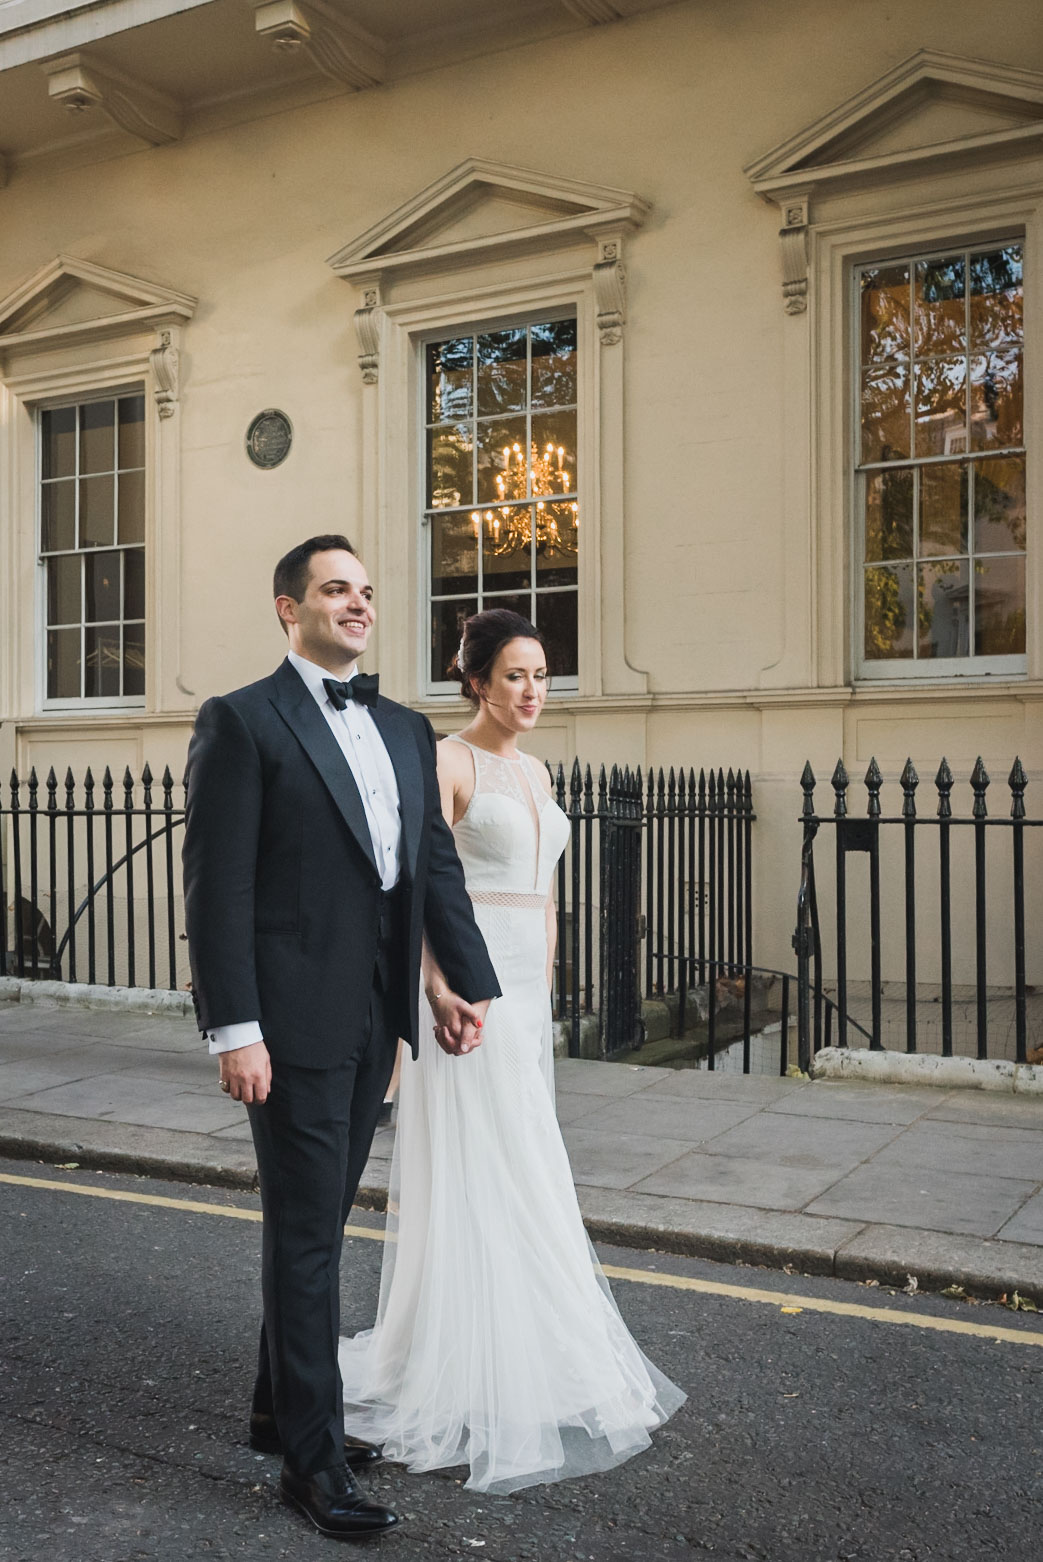 couple portraits wedding Carlton House Terrace London